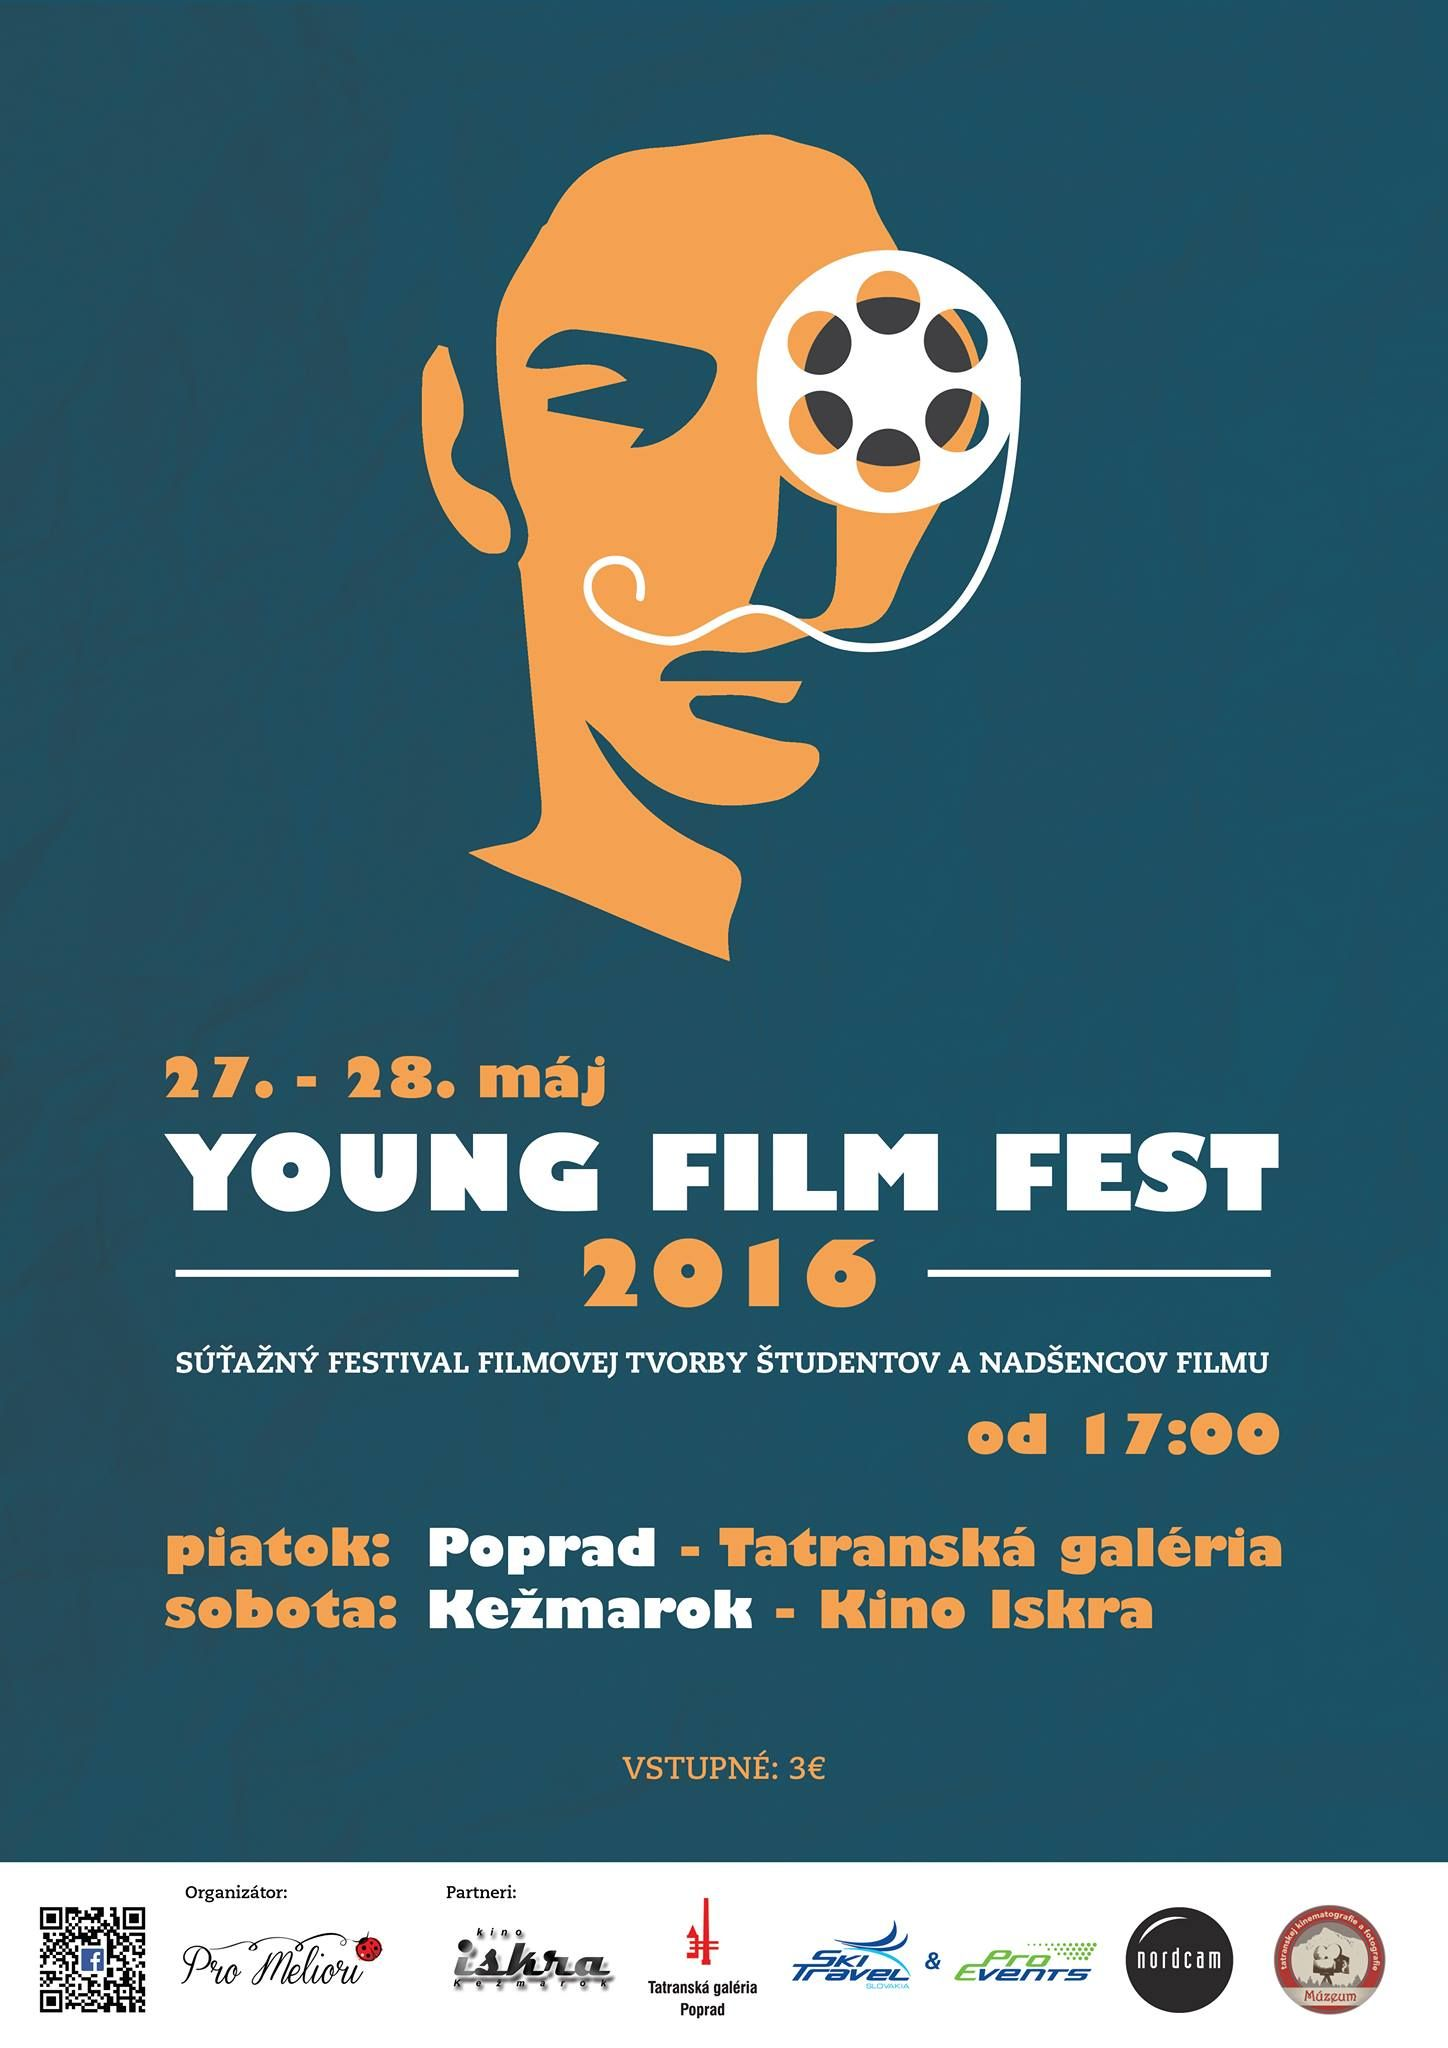 Young Film Fest 2016